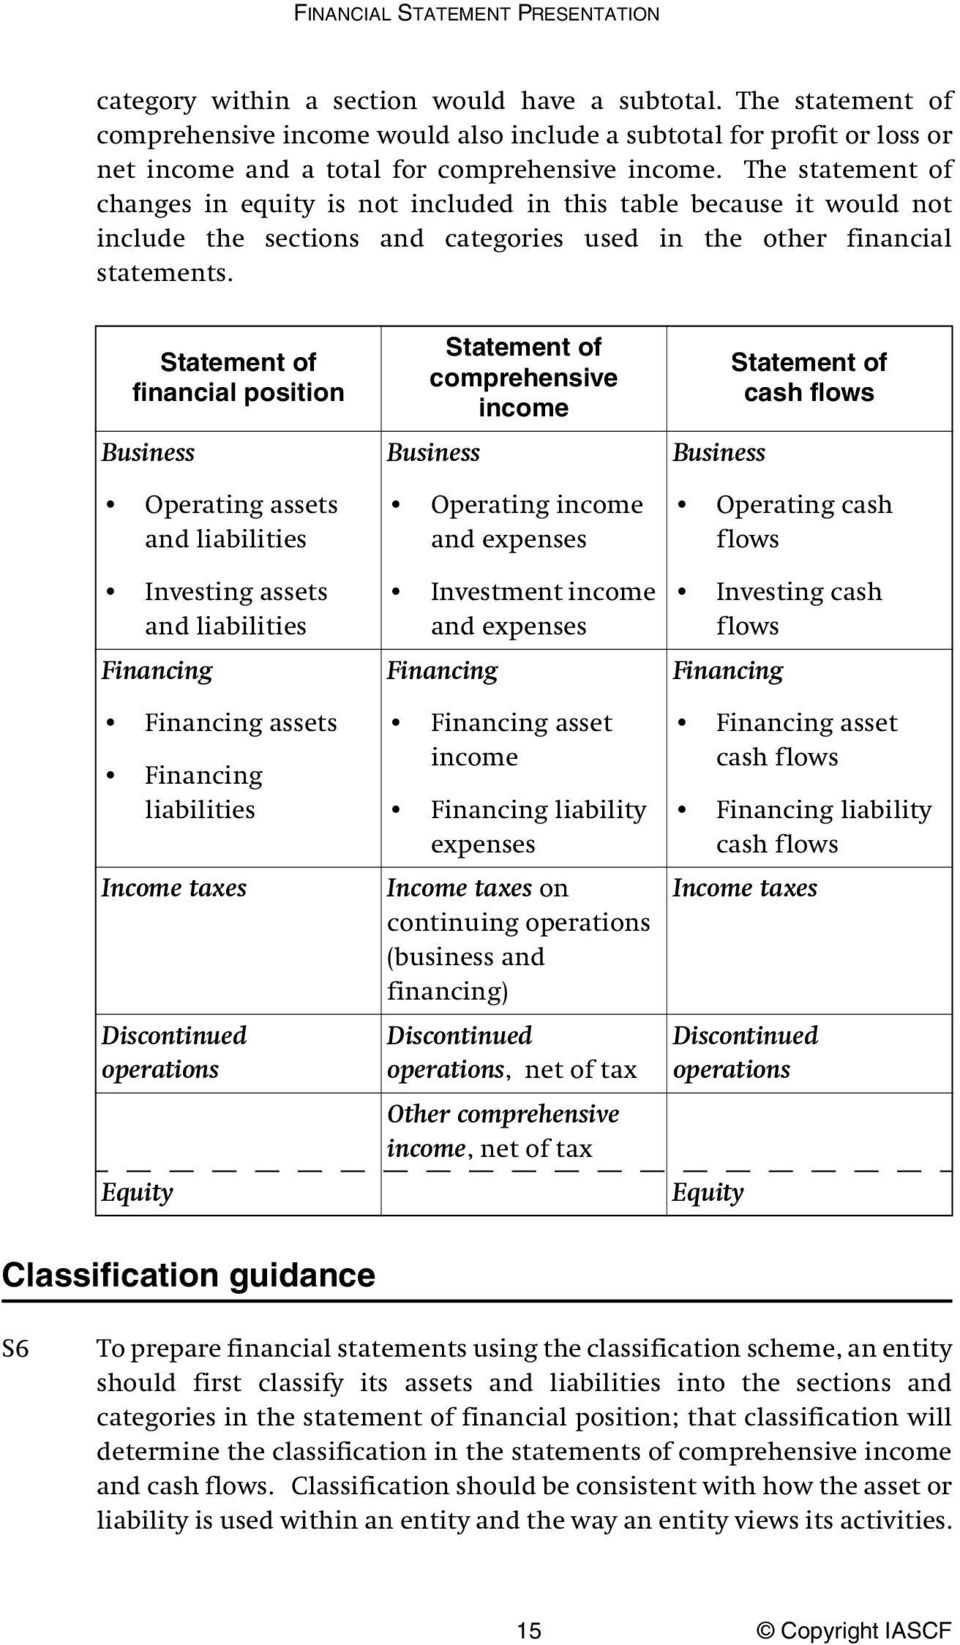 The statement of changes in equity is not included in this table because it would not include the sections and categories used in the other financial statements.